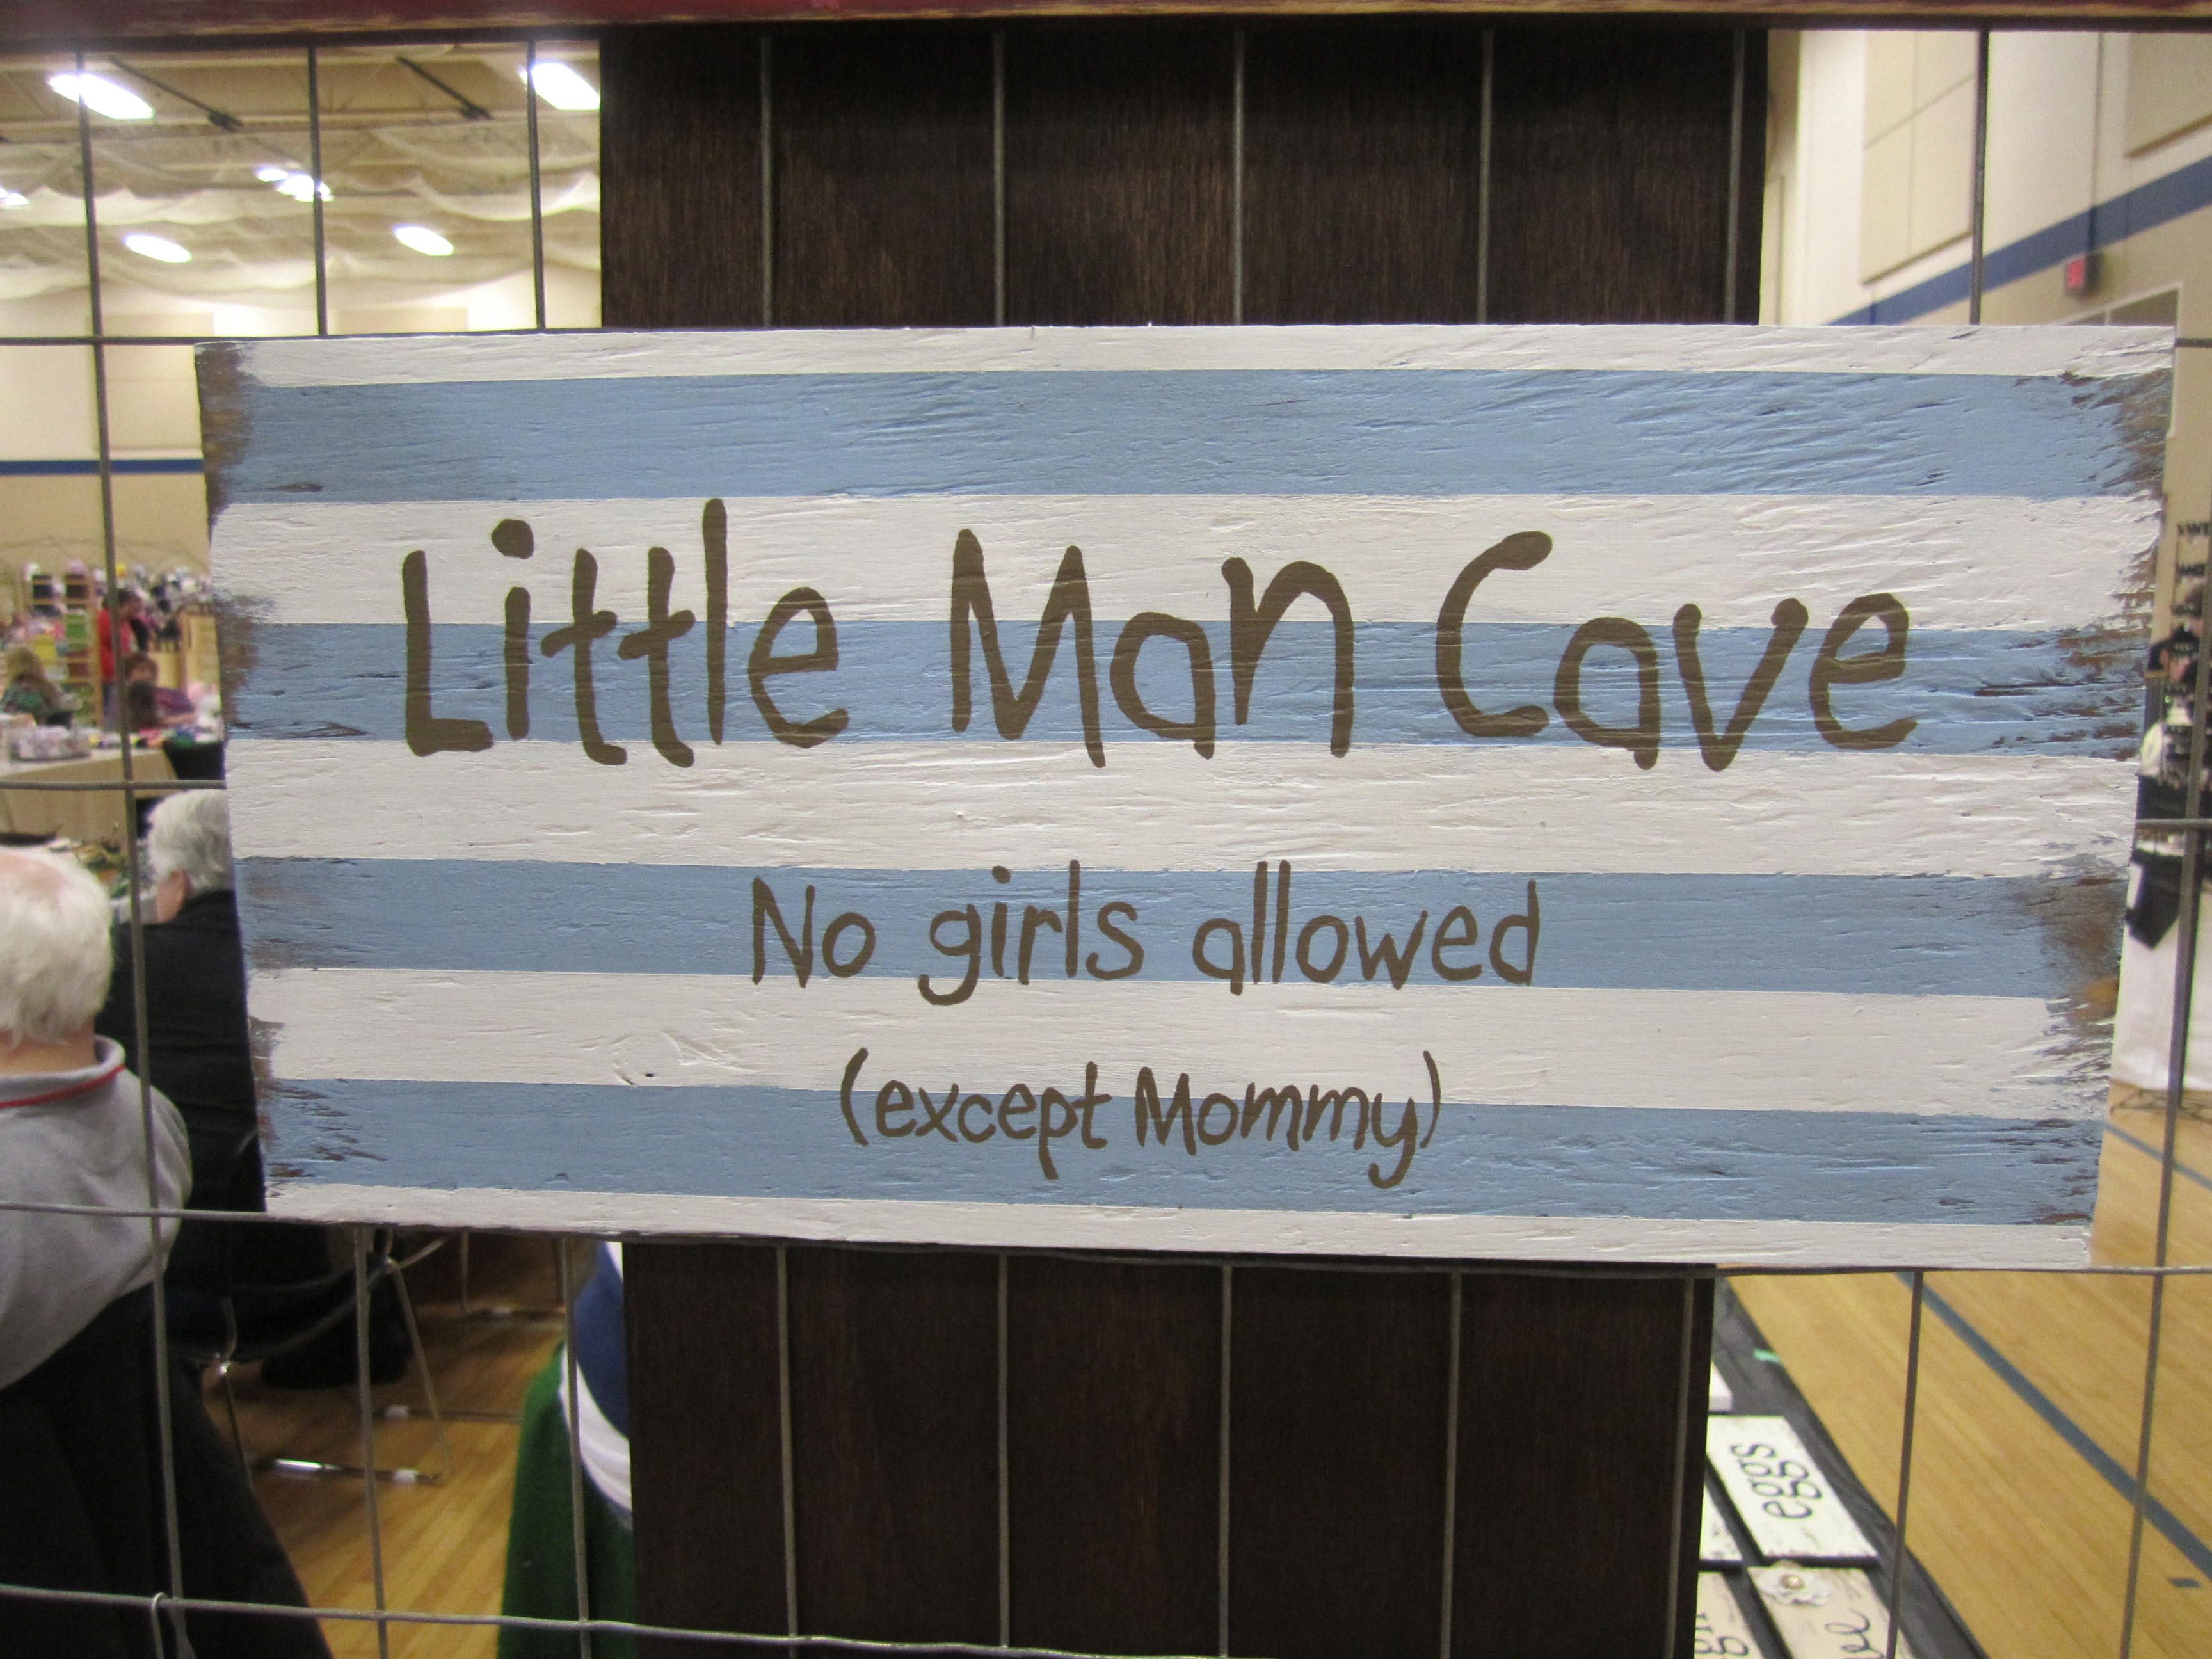 Man Cave Room Sign : Little man cave sign so cute momma s baby pinterest